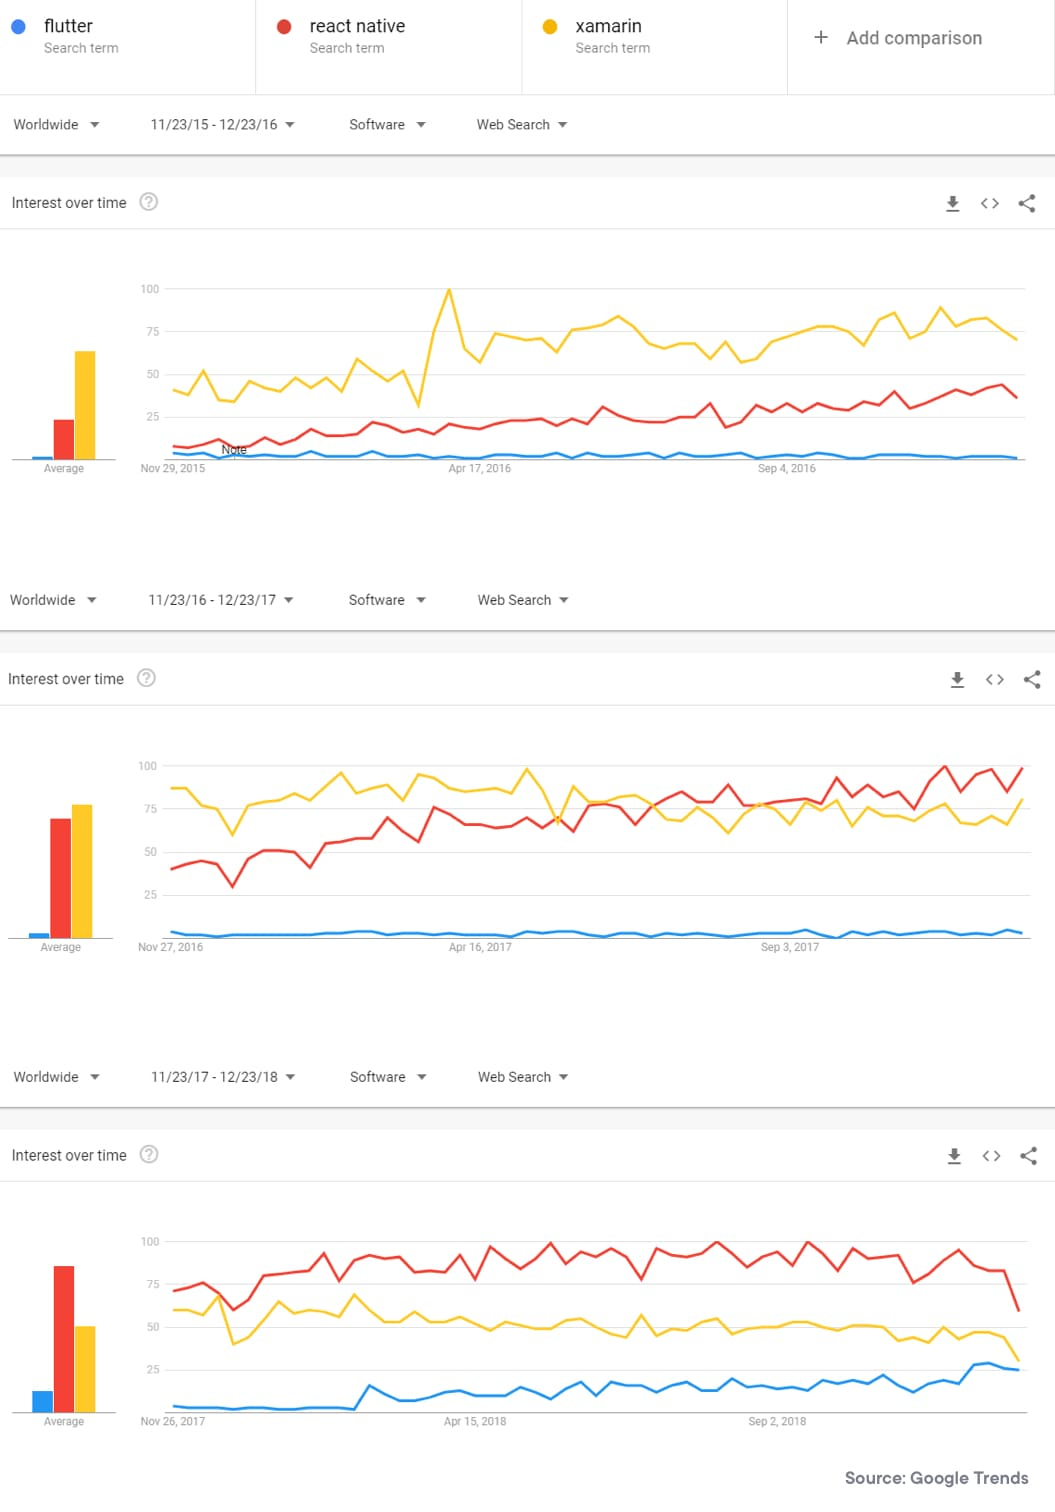 Flutter vs React Native vs Xamarin Google Trends